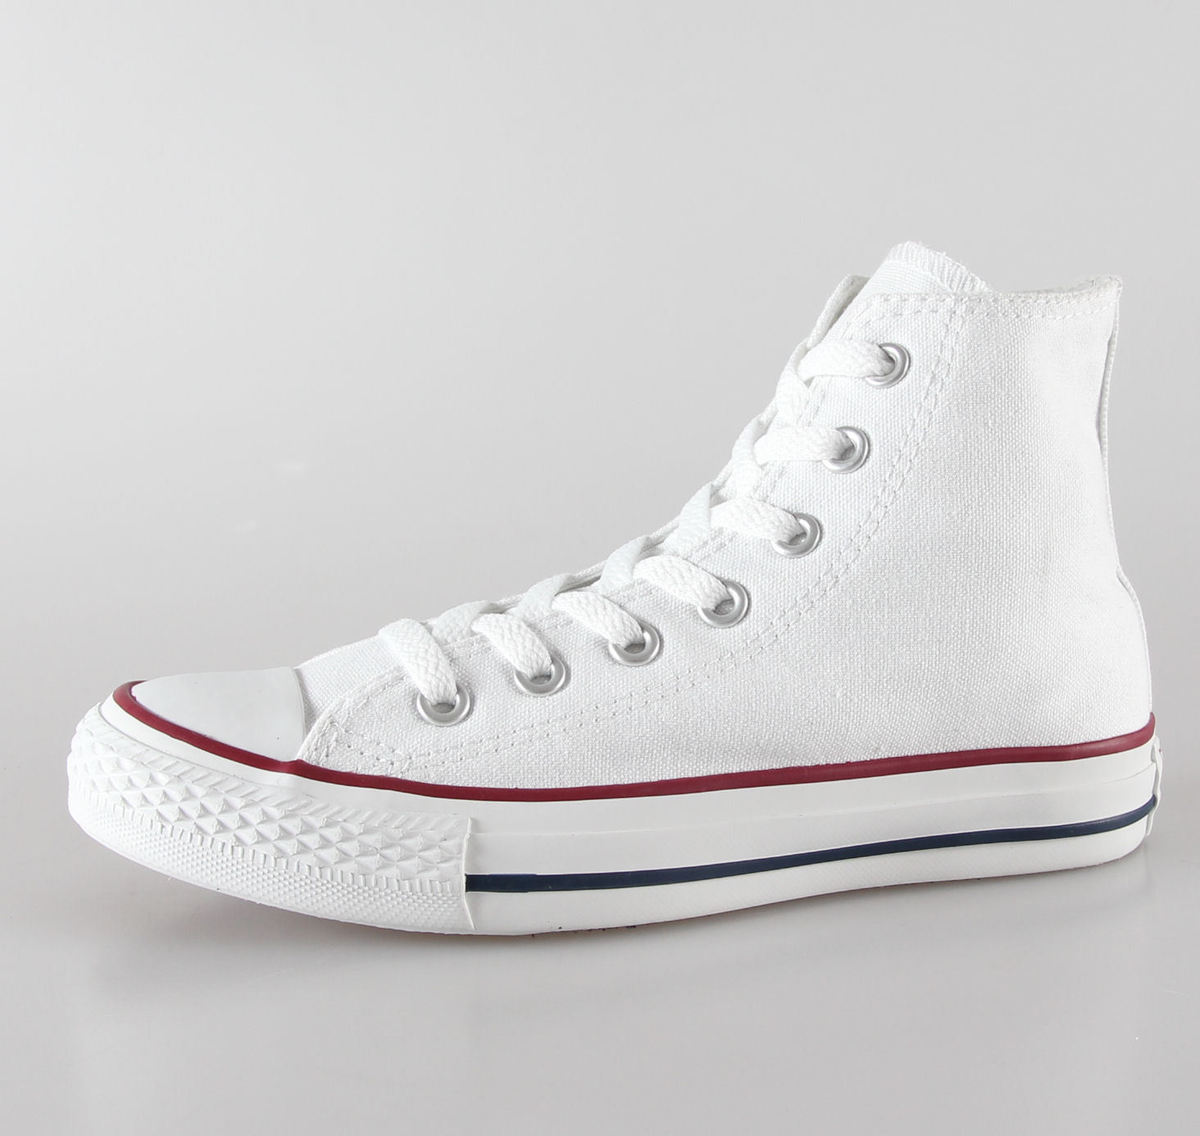 boty CONVERSE - Chuck Taylor All Star - Optic White - M7650